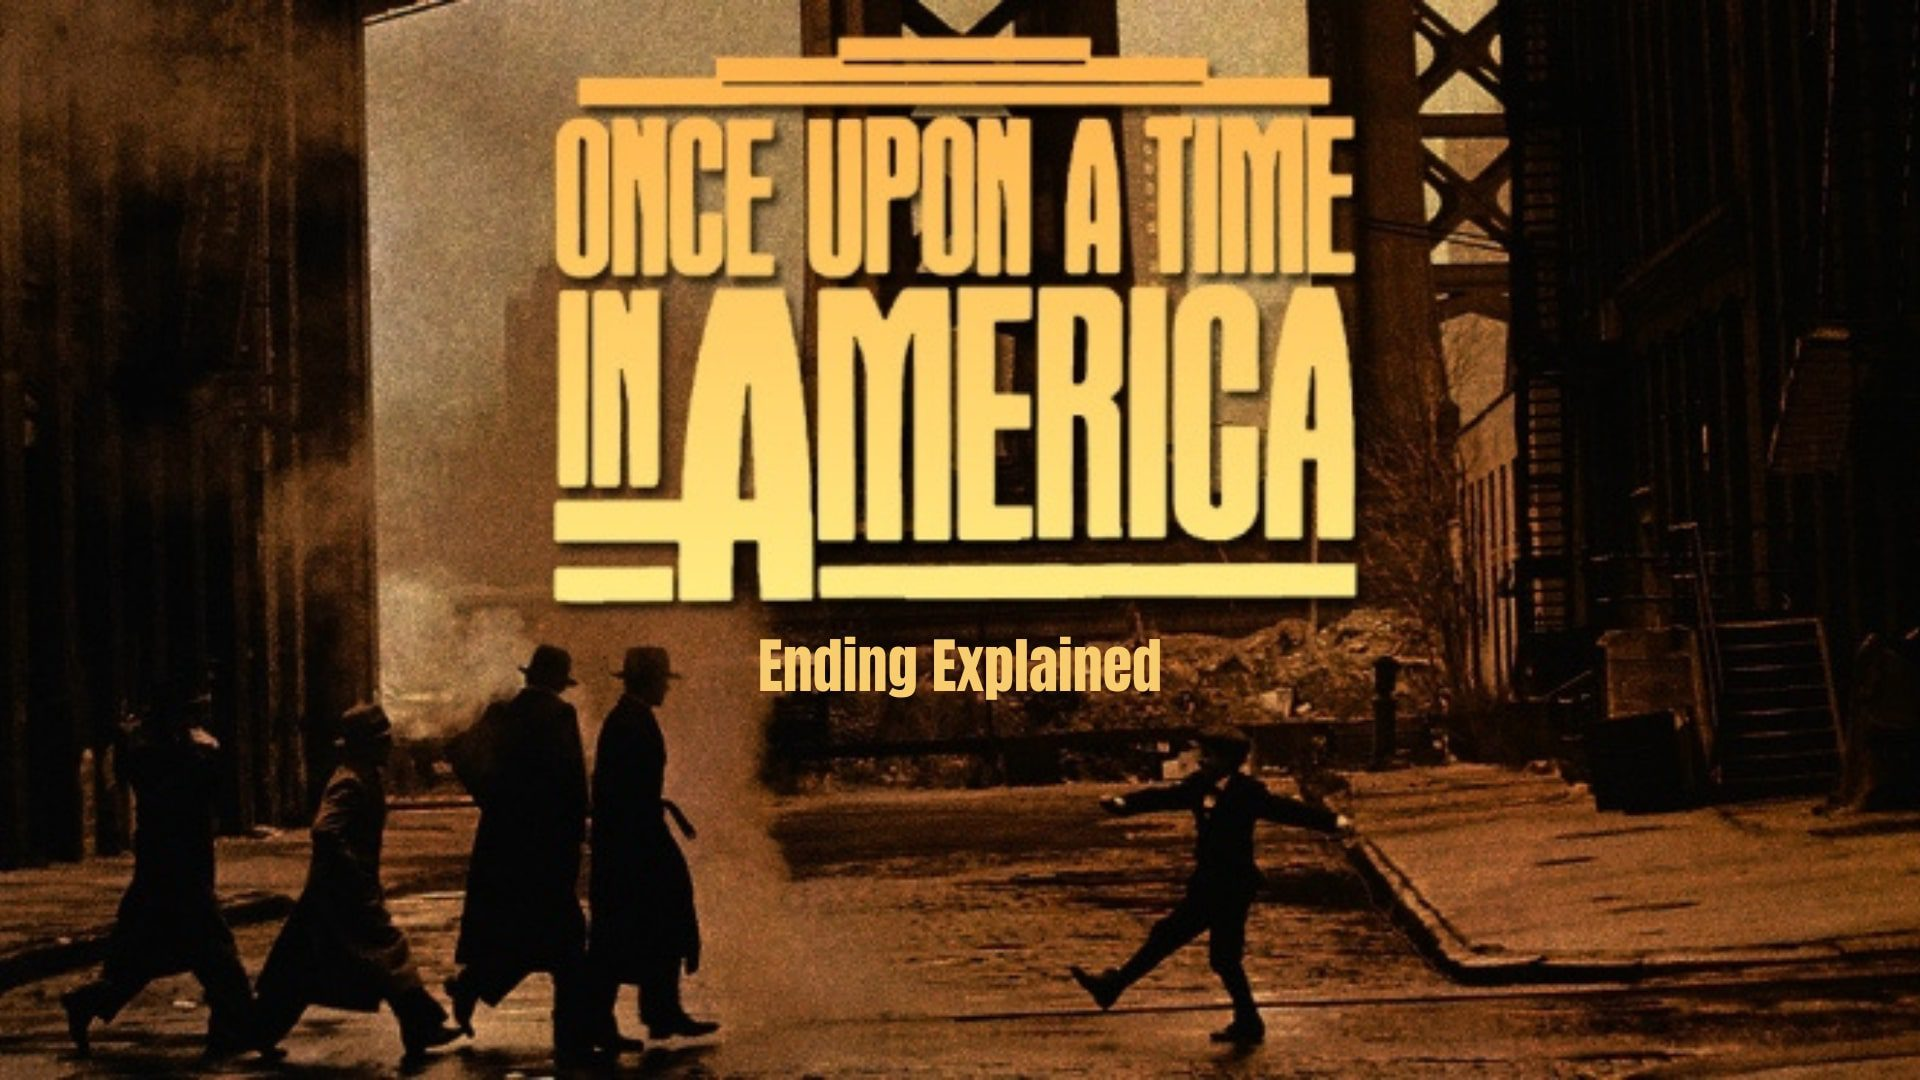 Once Upon A Time In America Ending Explained